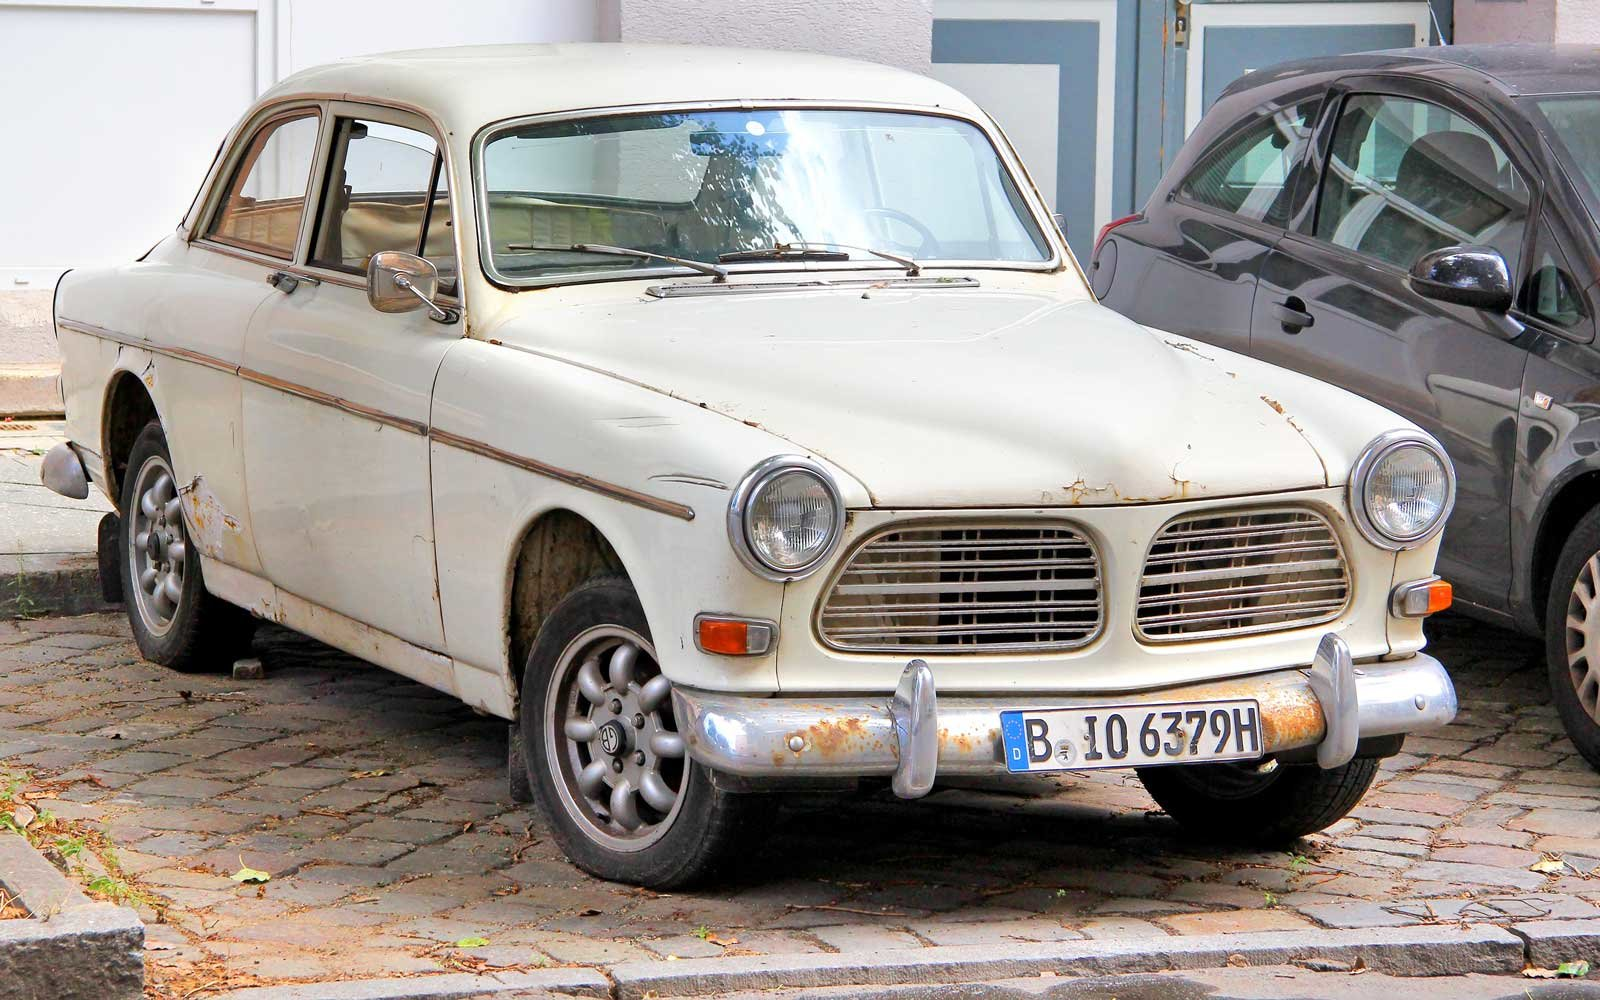 Man Forgets Where He Parked, Finds Car 20 Years Later | Travel + Leisure